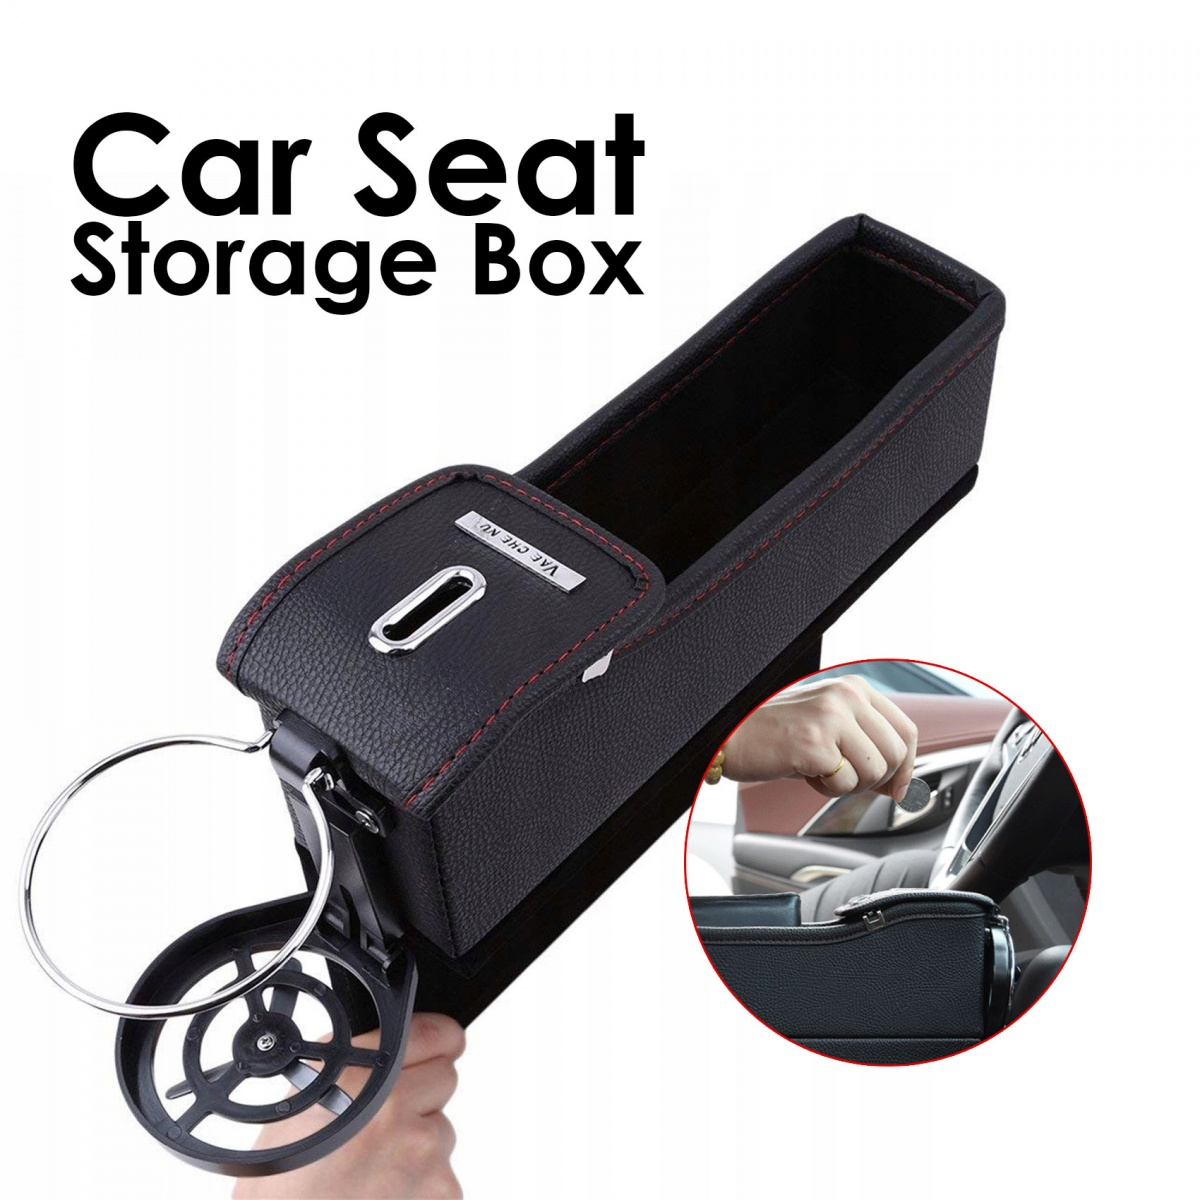 Universal Car Seat Gap Storage Box Organizer - Black